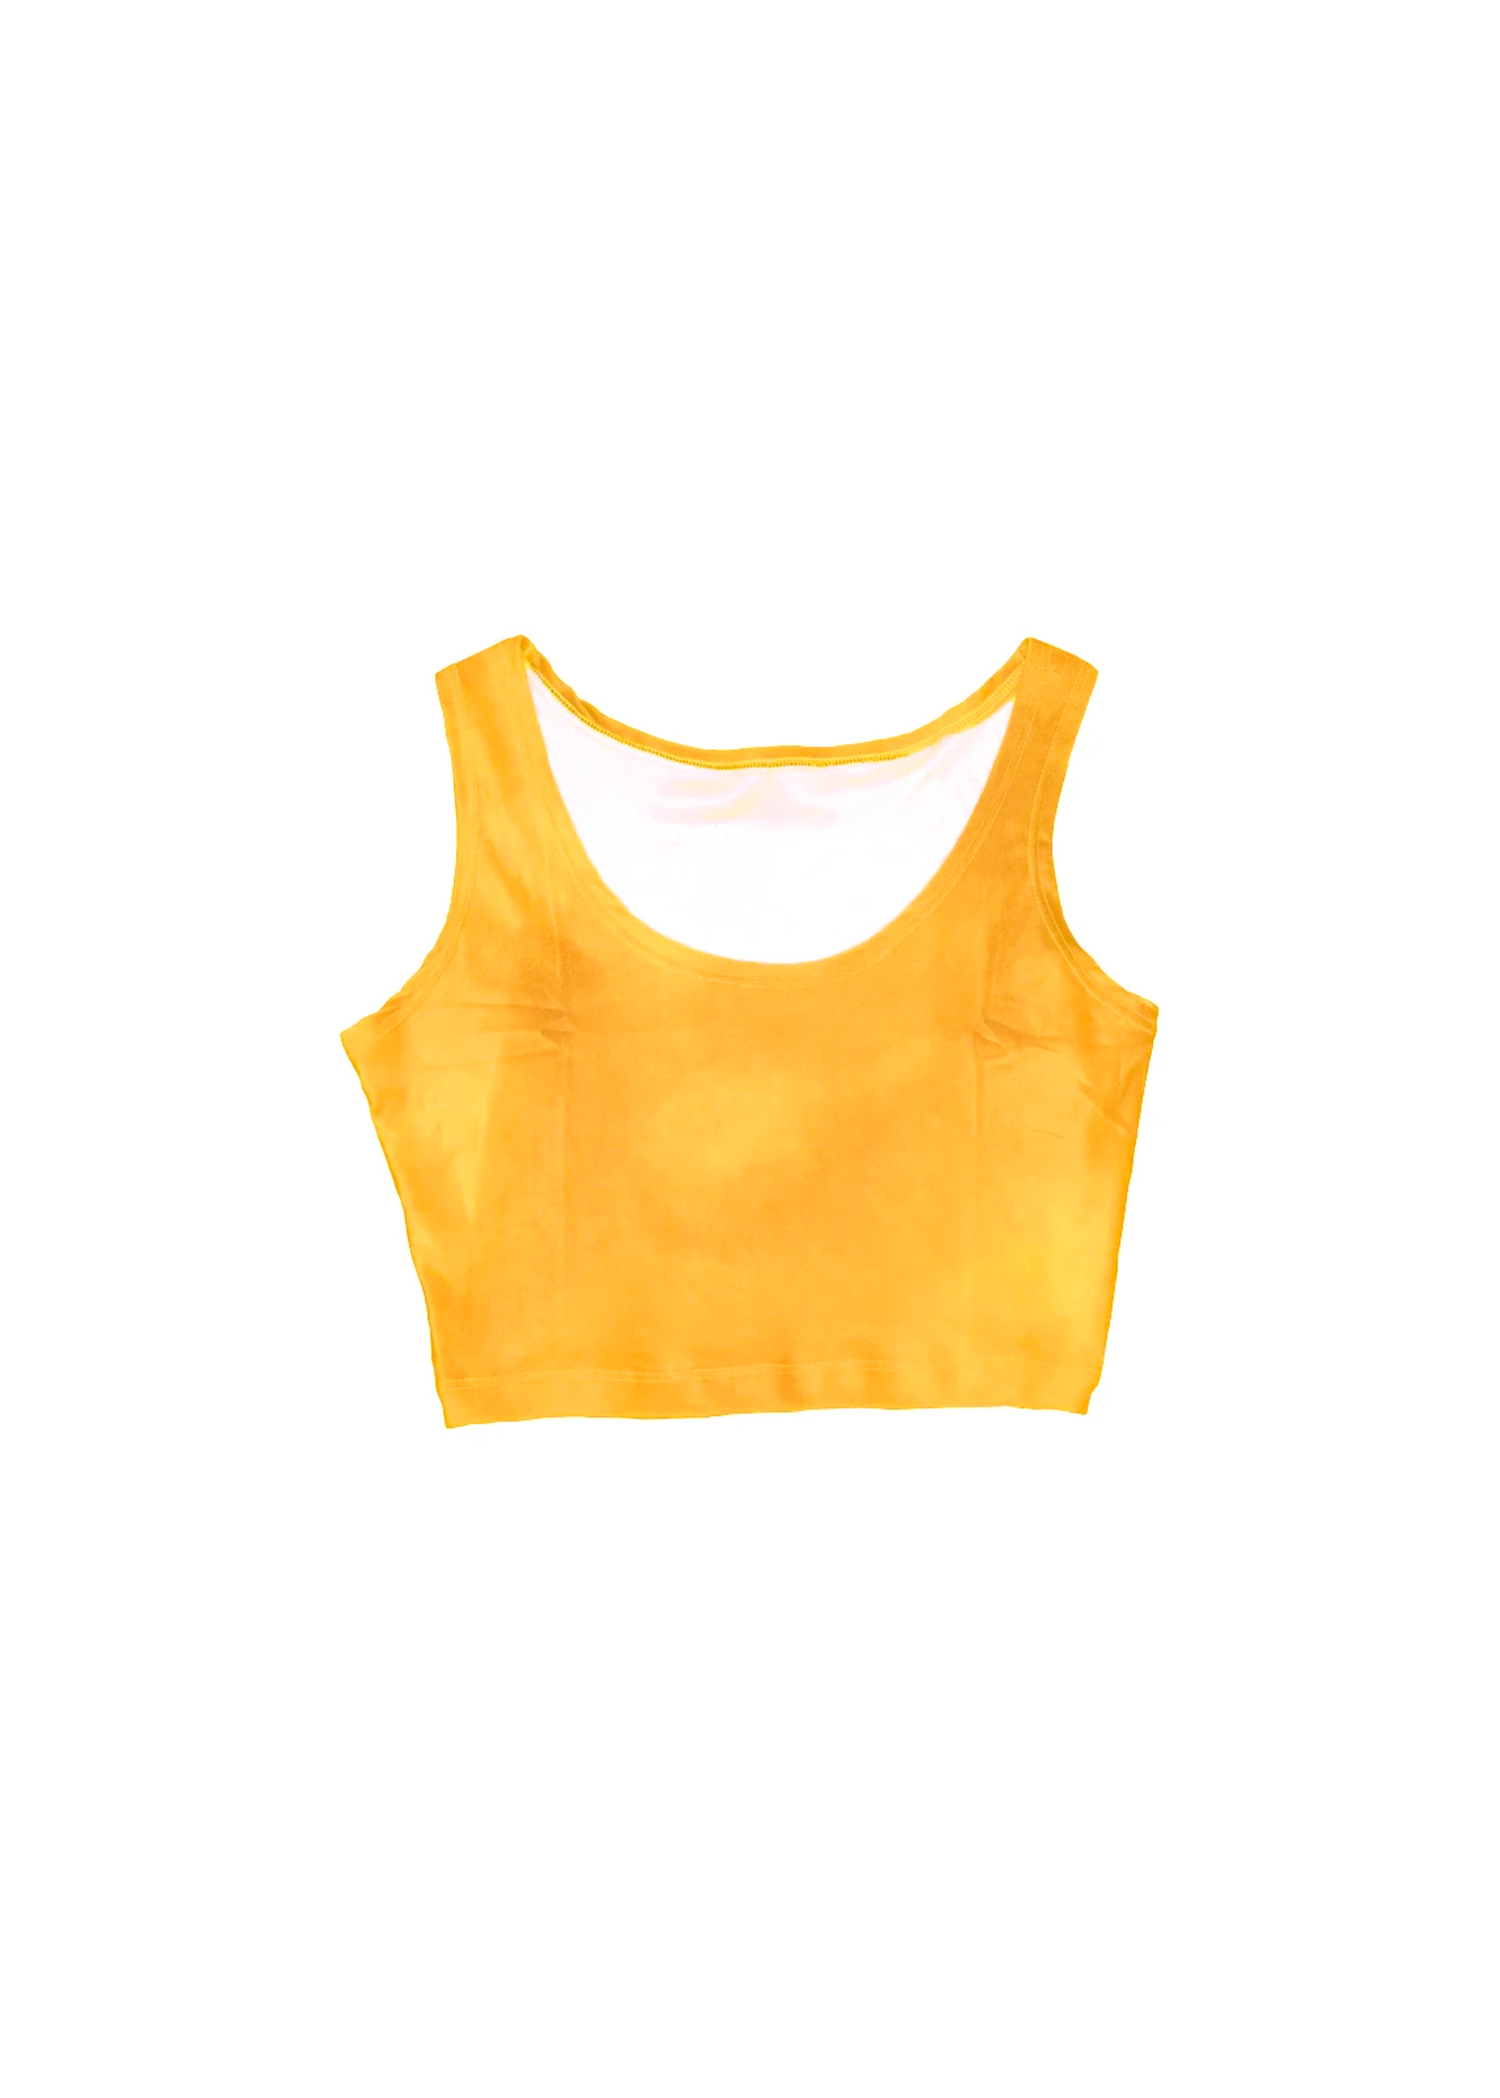 velvet crop top in mango